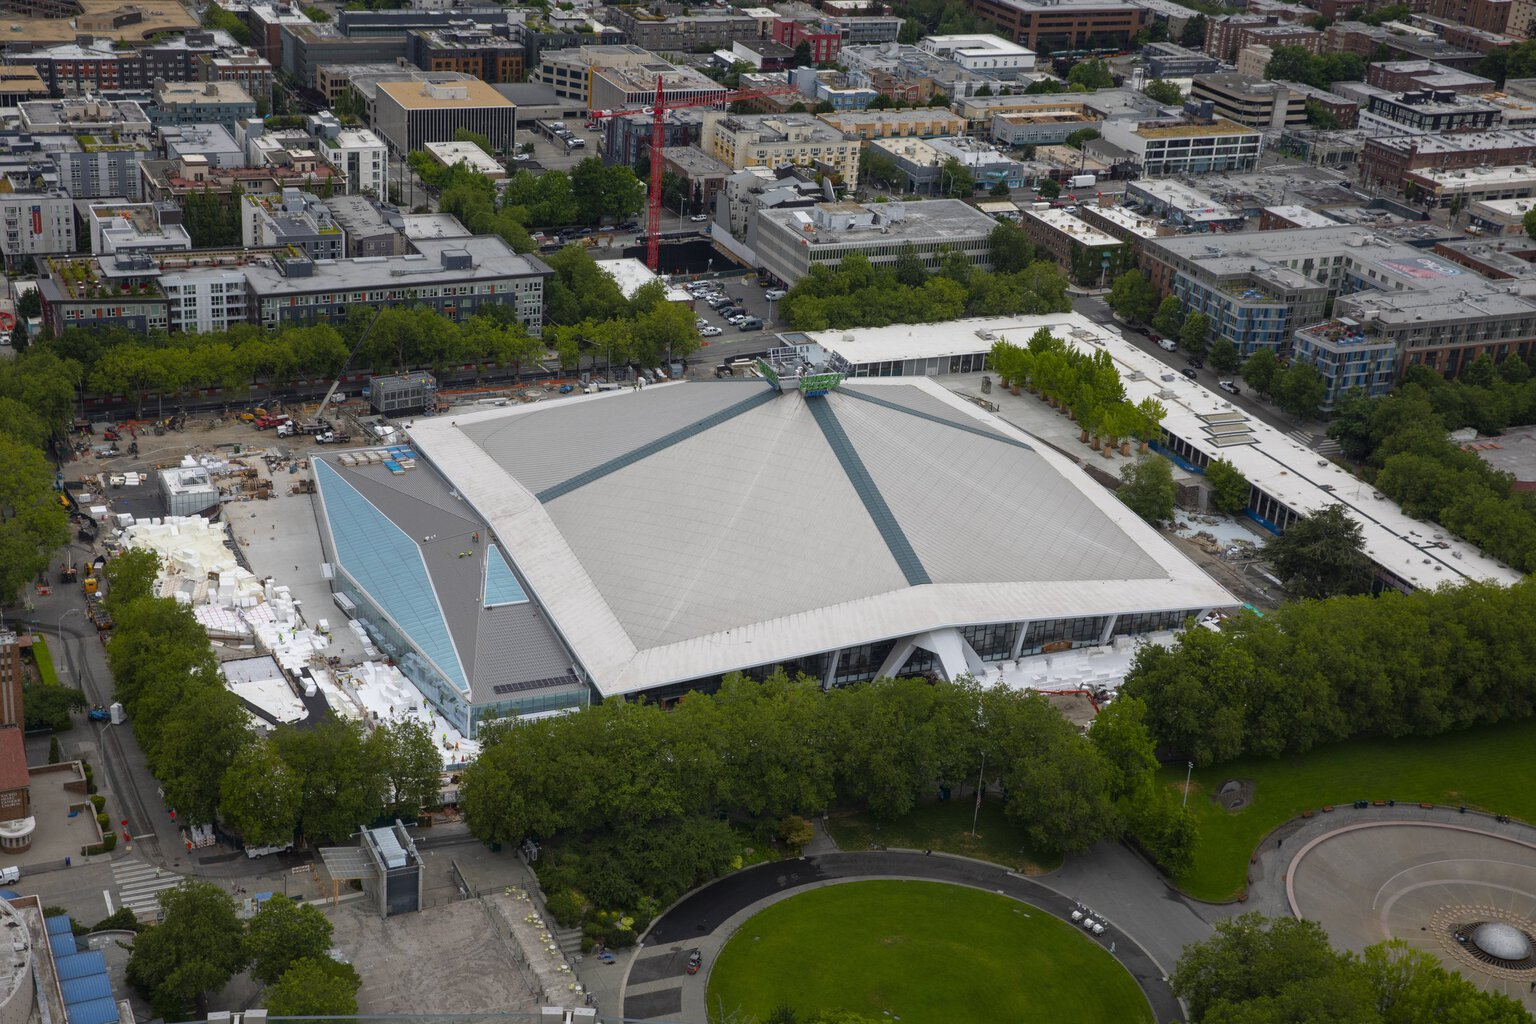 seattle kraken on track to open new arena in third week of